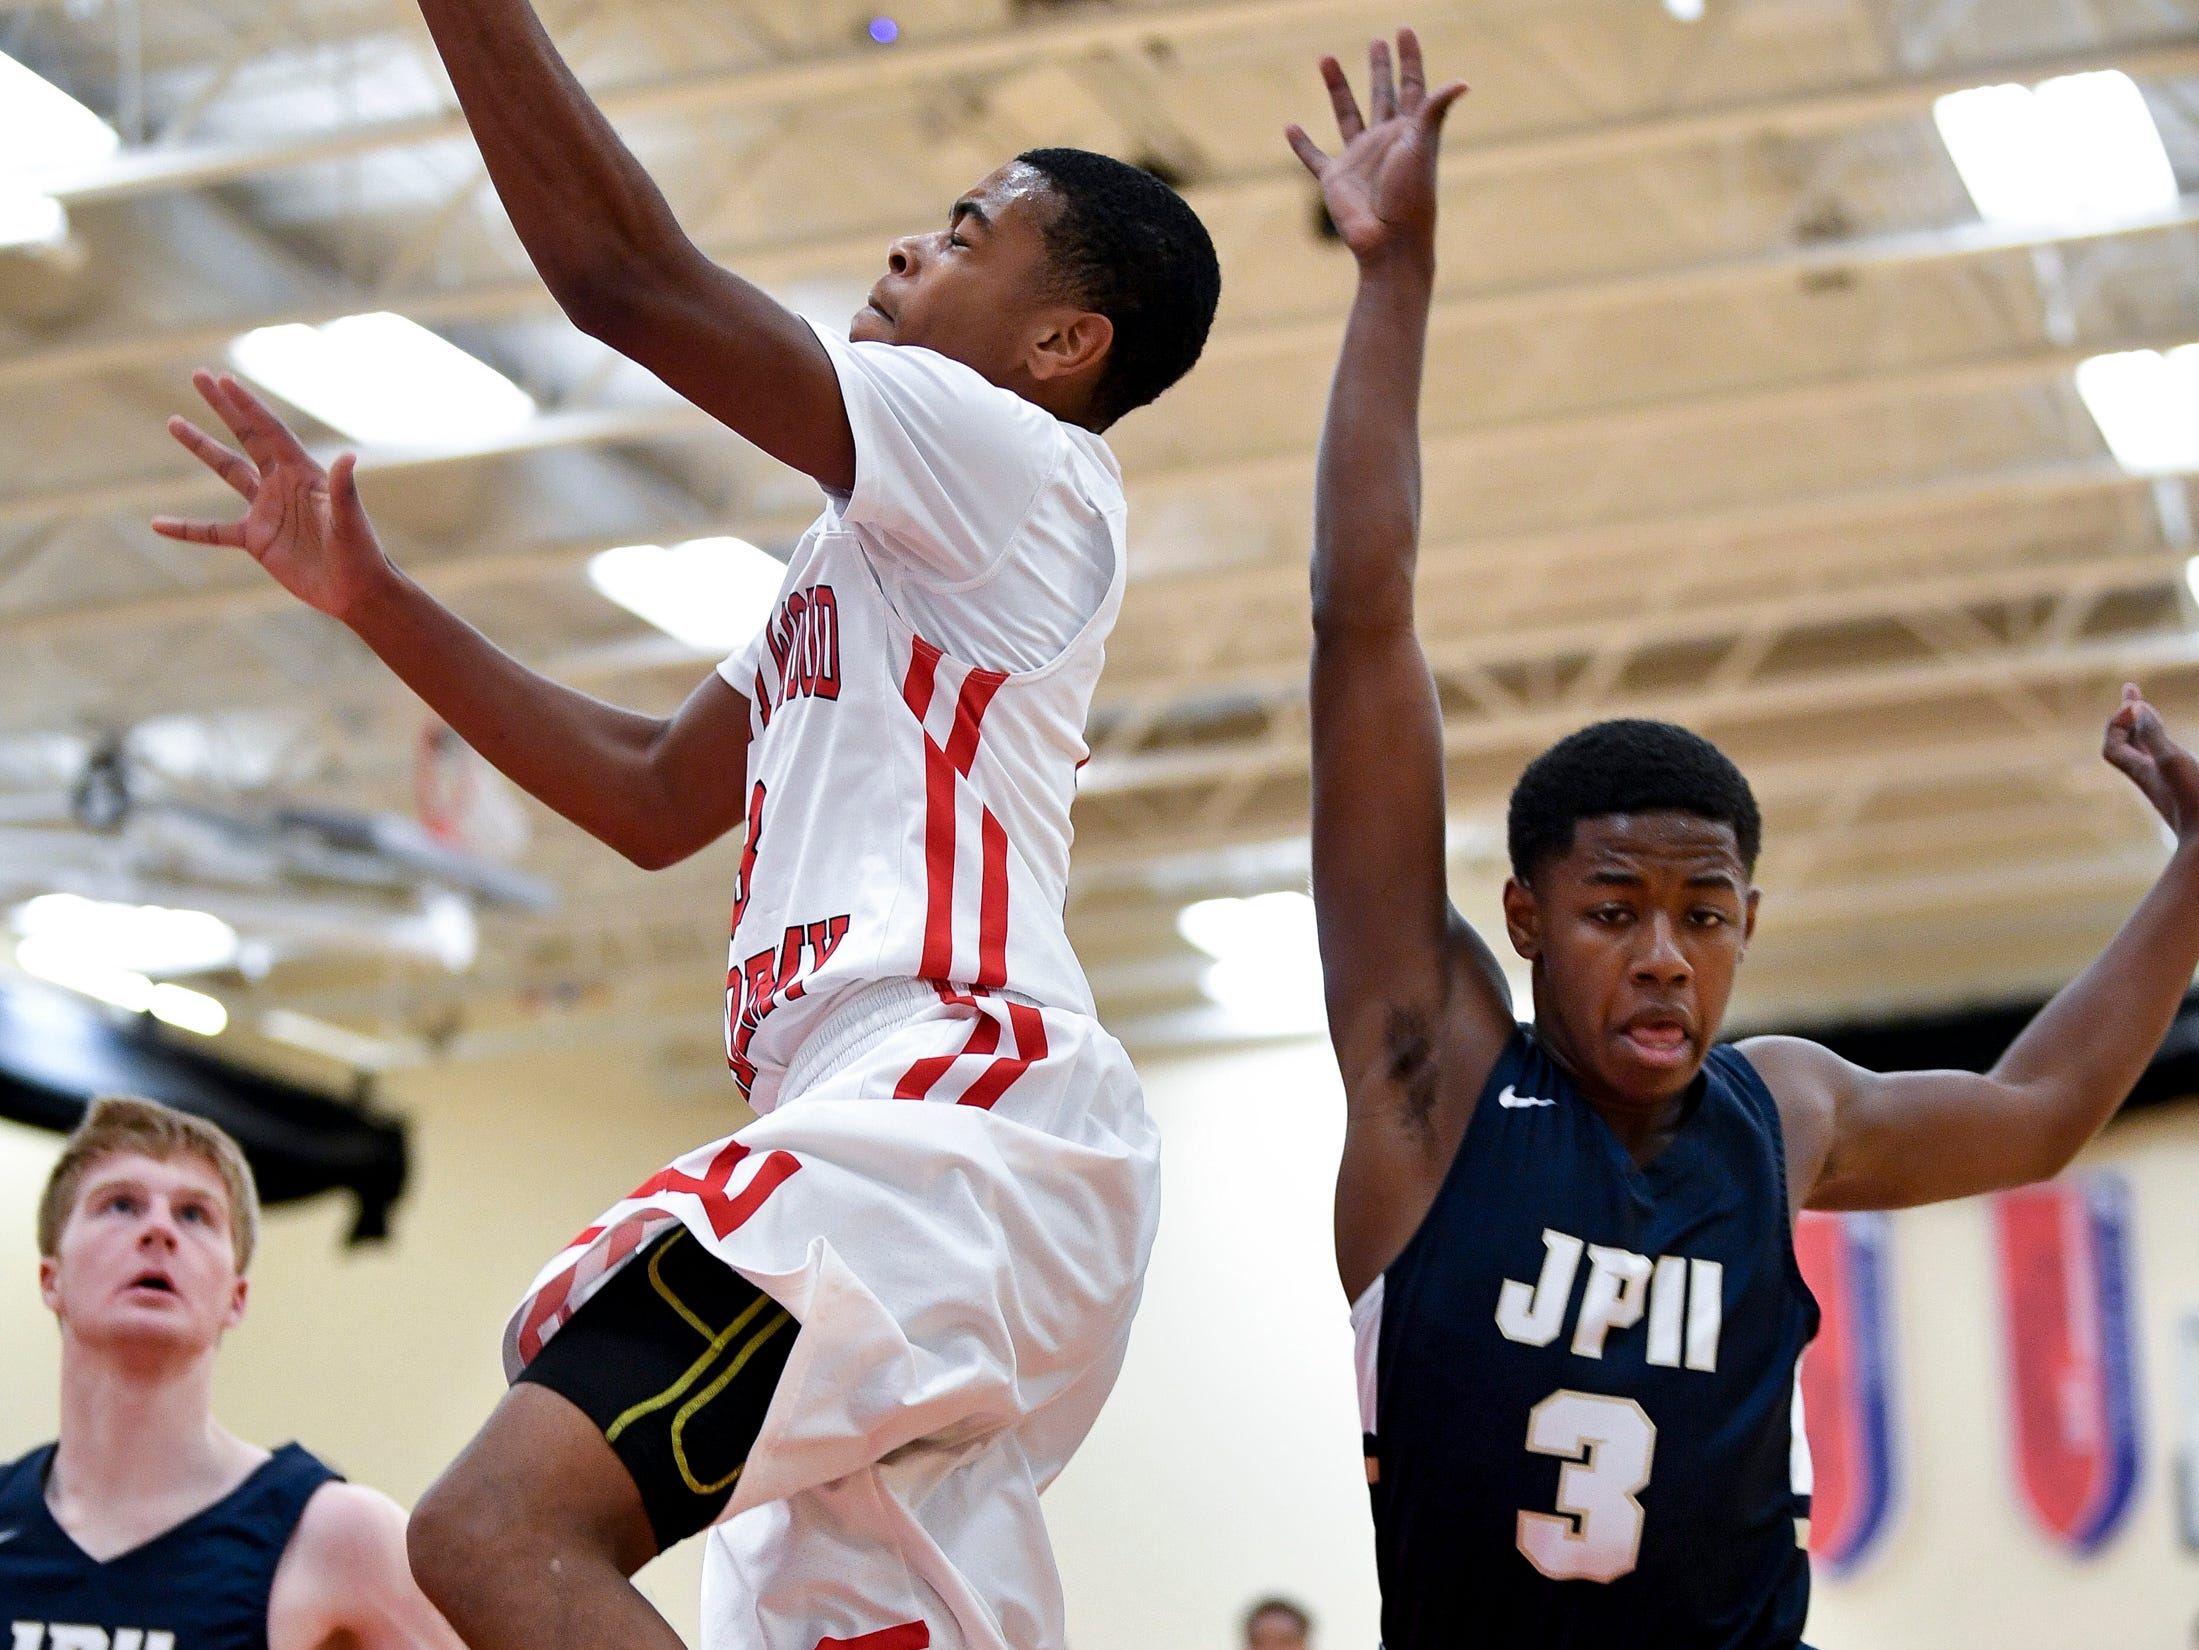 Brentwood Academy's Bj Davis (3) shoots past Pope John Paul II's Timothy Lark (3) during the first half at Brentwood Academy in Brentwood, Tenn., Friday, Jan. 4, 2019.